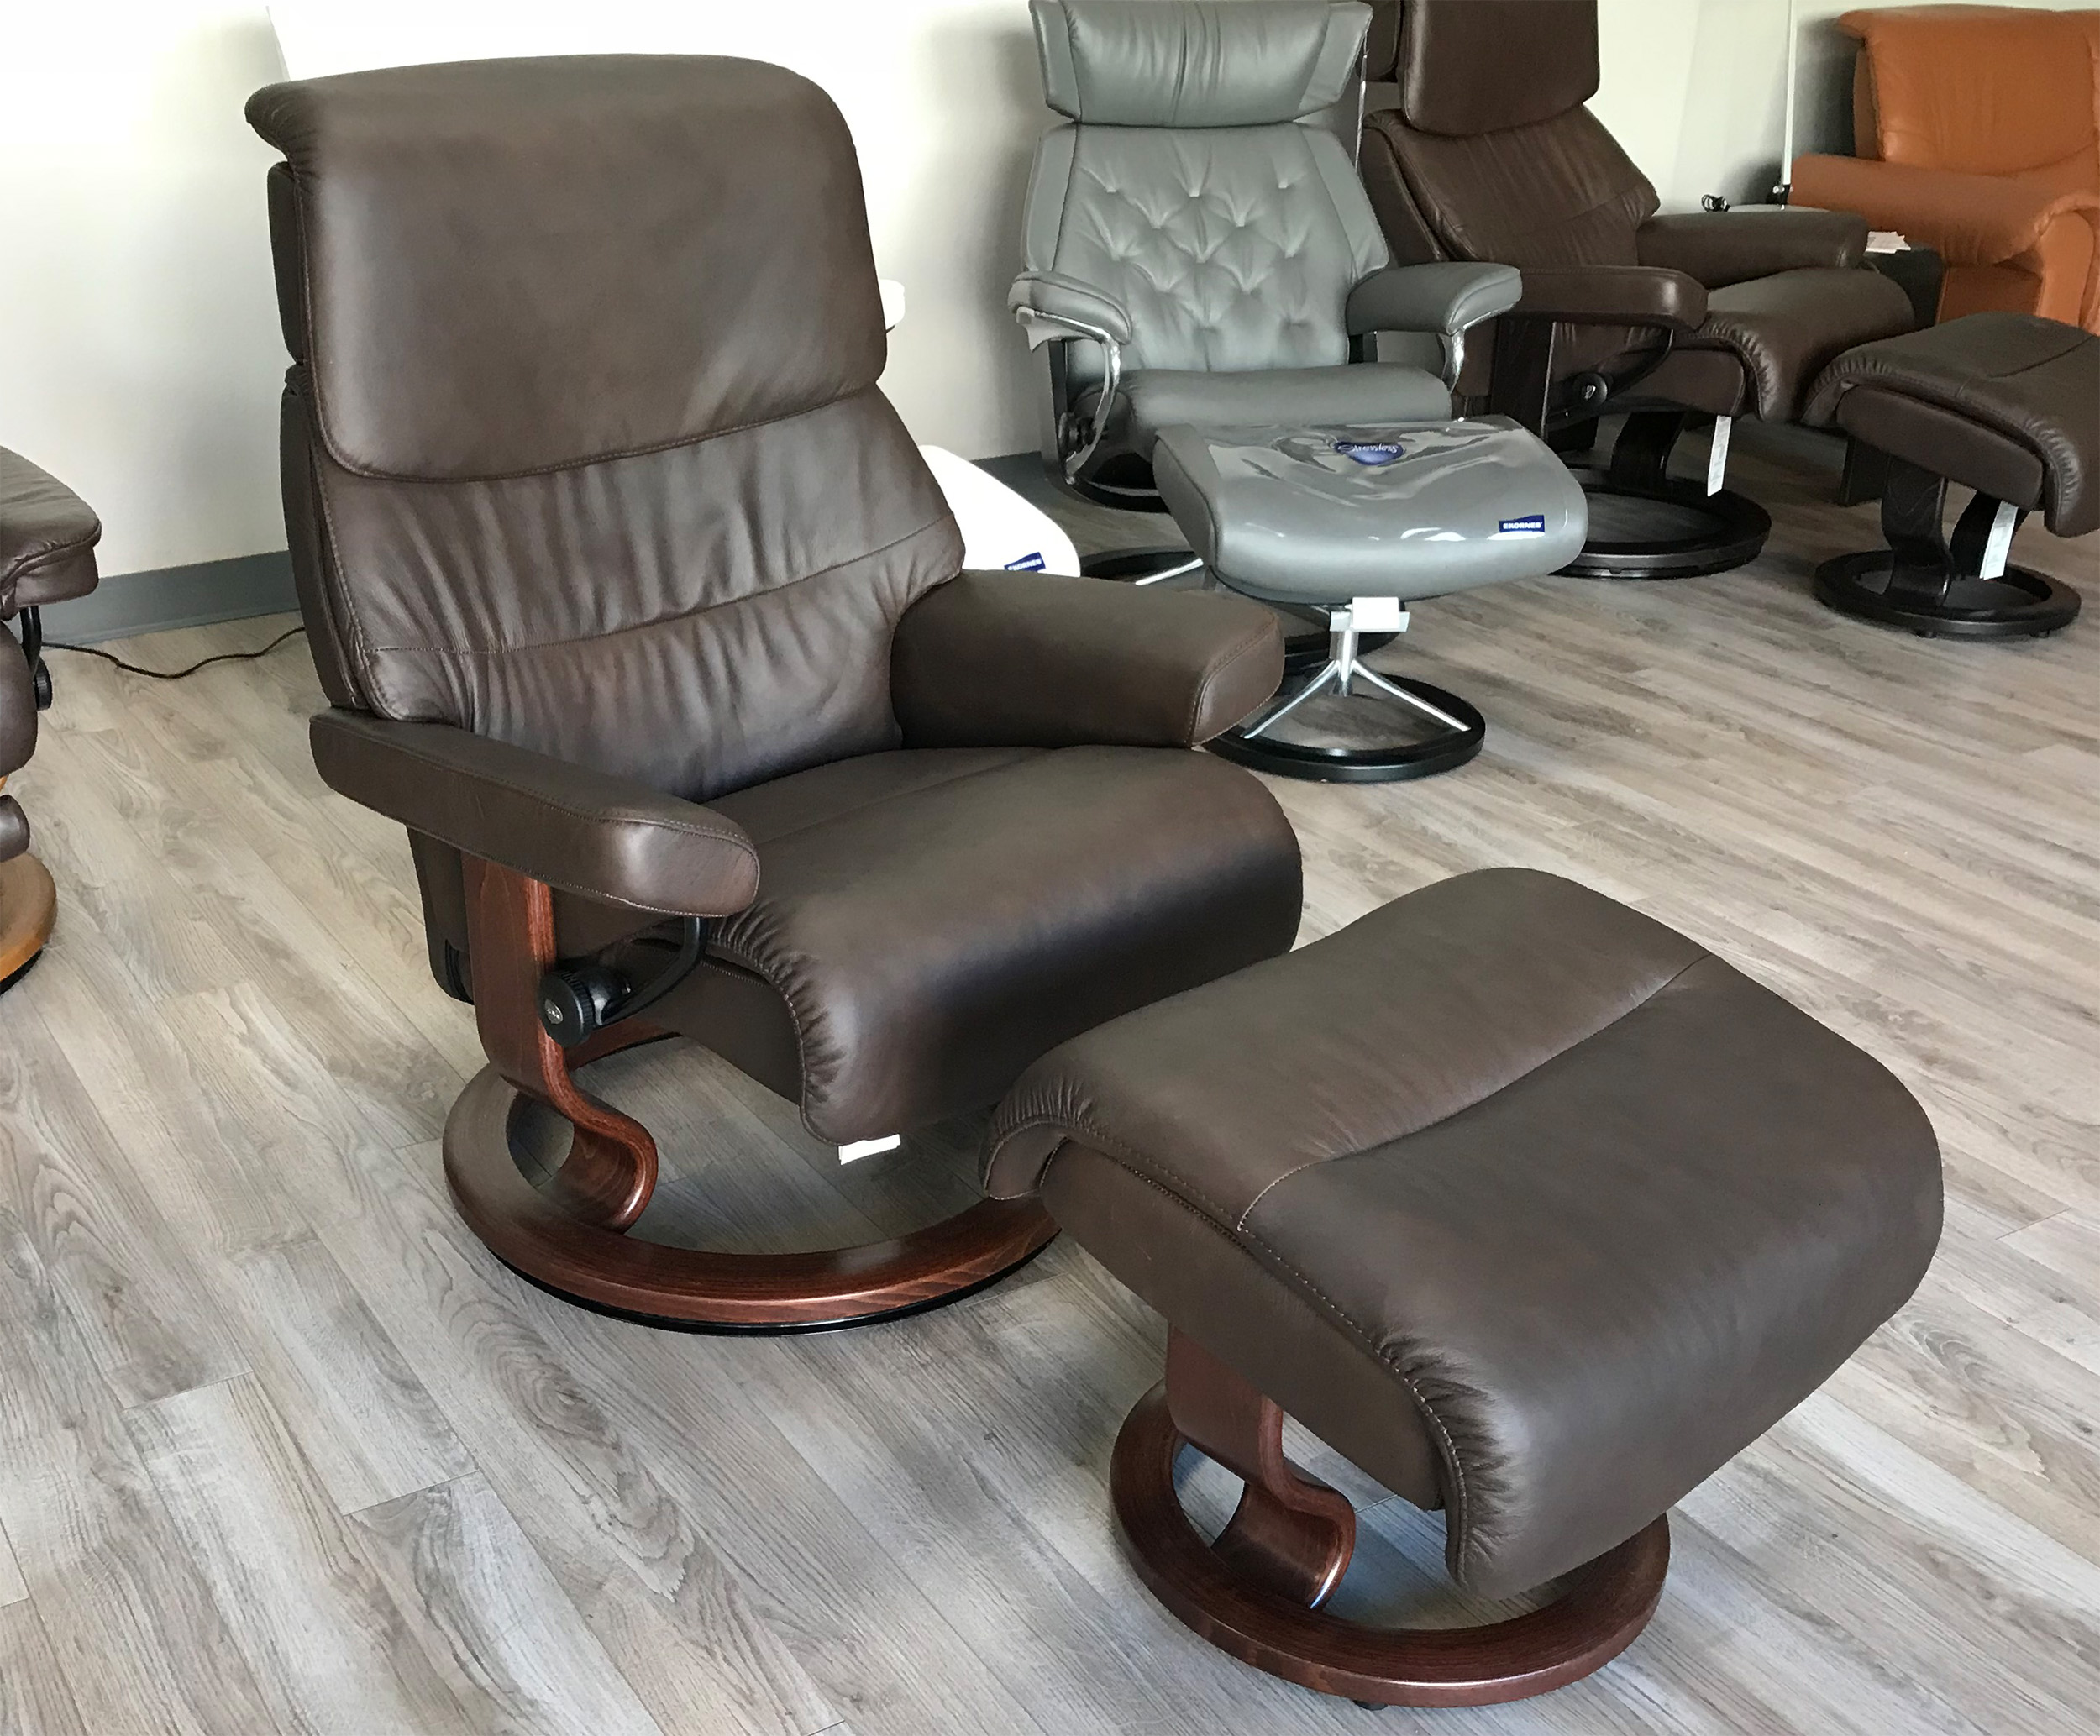 Stressless Capri Large Recliner Chair in Paloma Chocolate Leather & Stressless Capri Large Recliner Chair and Ottoman in Paloma ... islam-shia.org